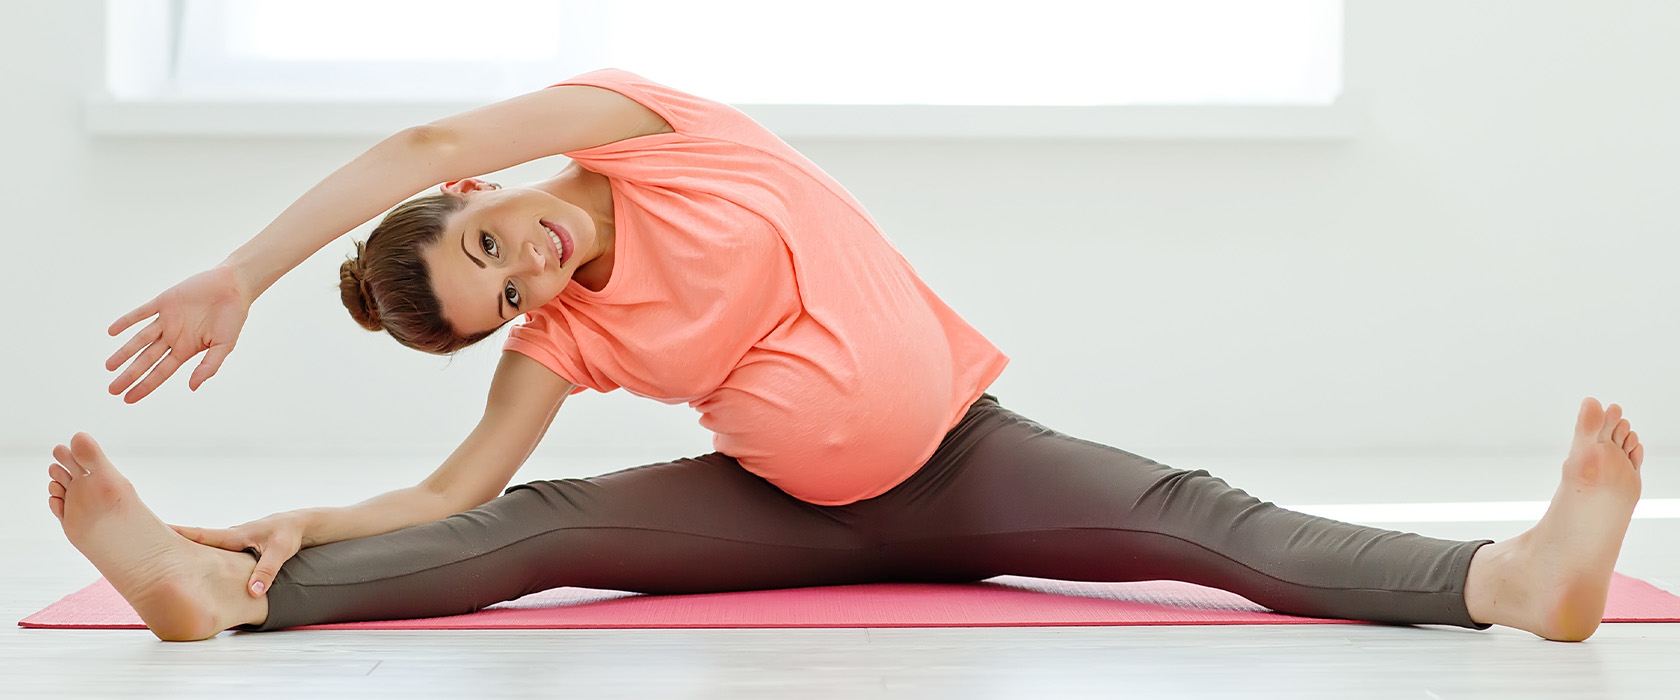 Chapter 6. Hatha yoga during pregnancy Recommendations for practice. What is Perinatal Yoga?